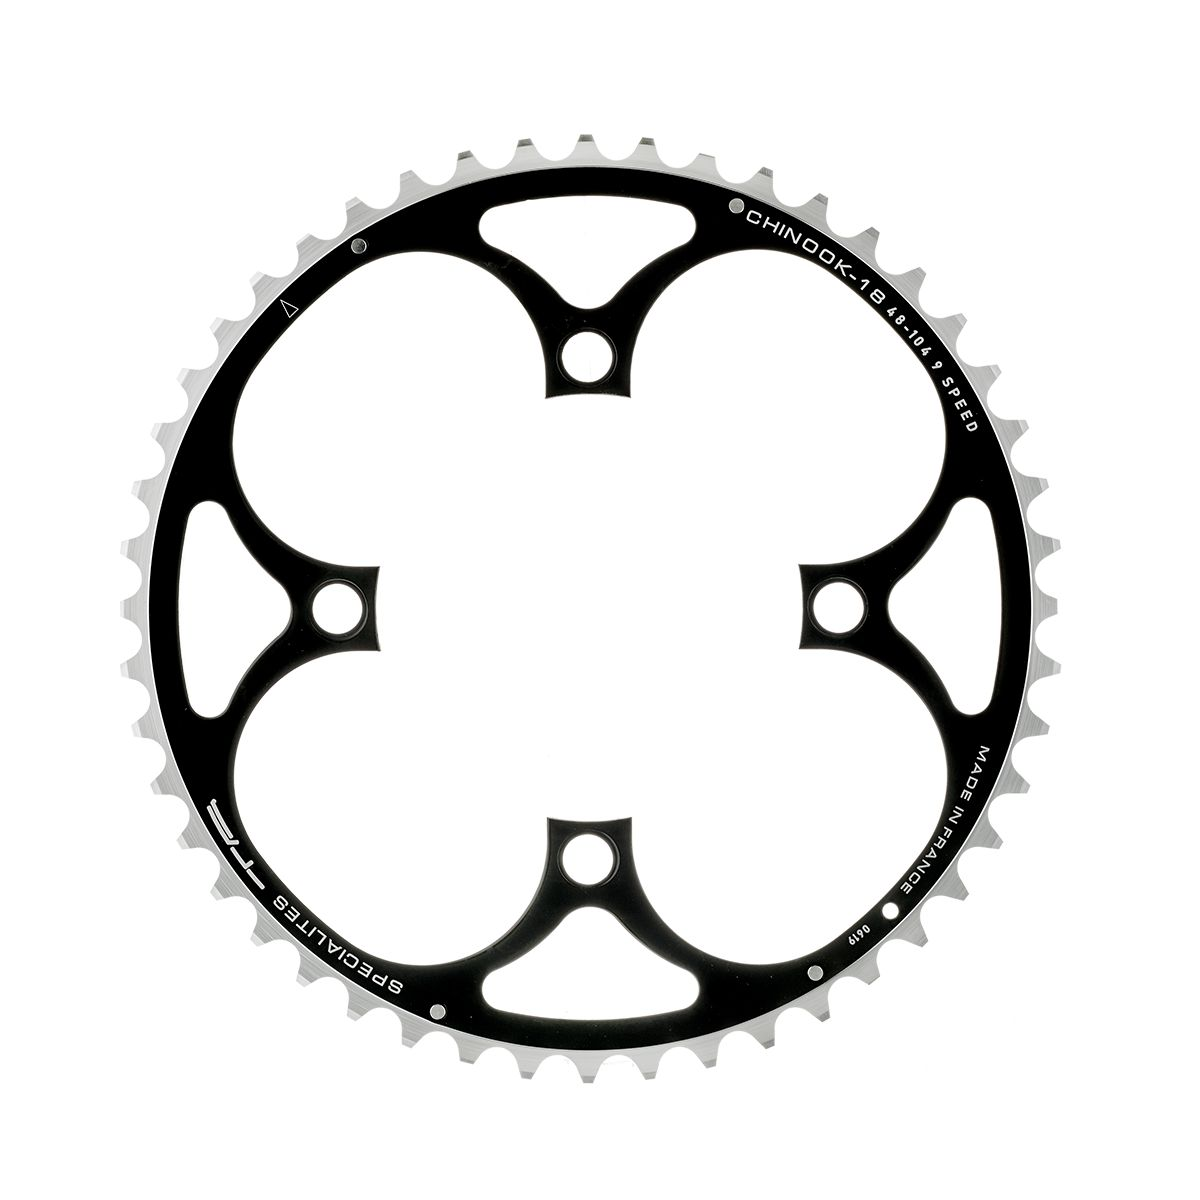 Chinook 9-speed 48-tooth chainring